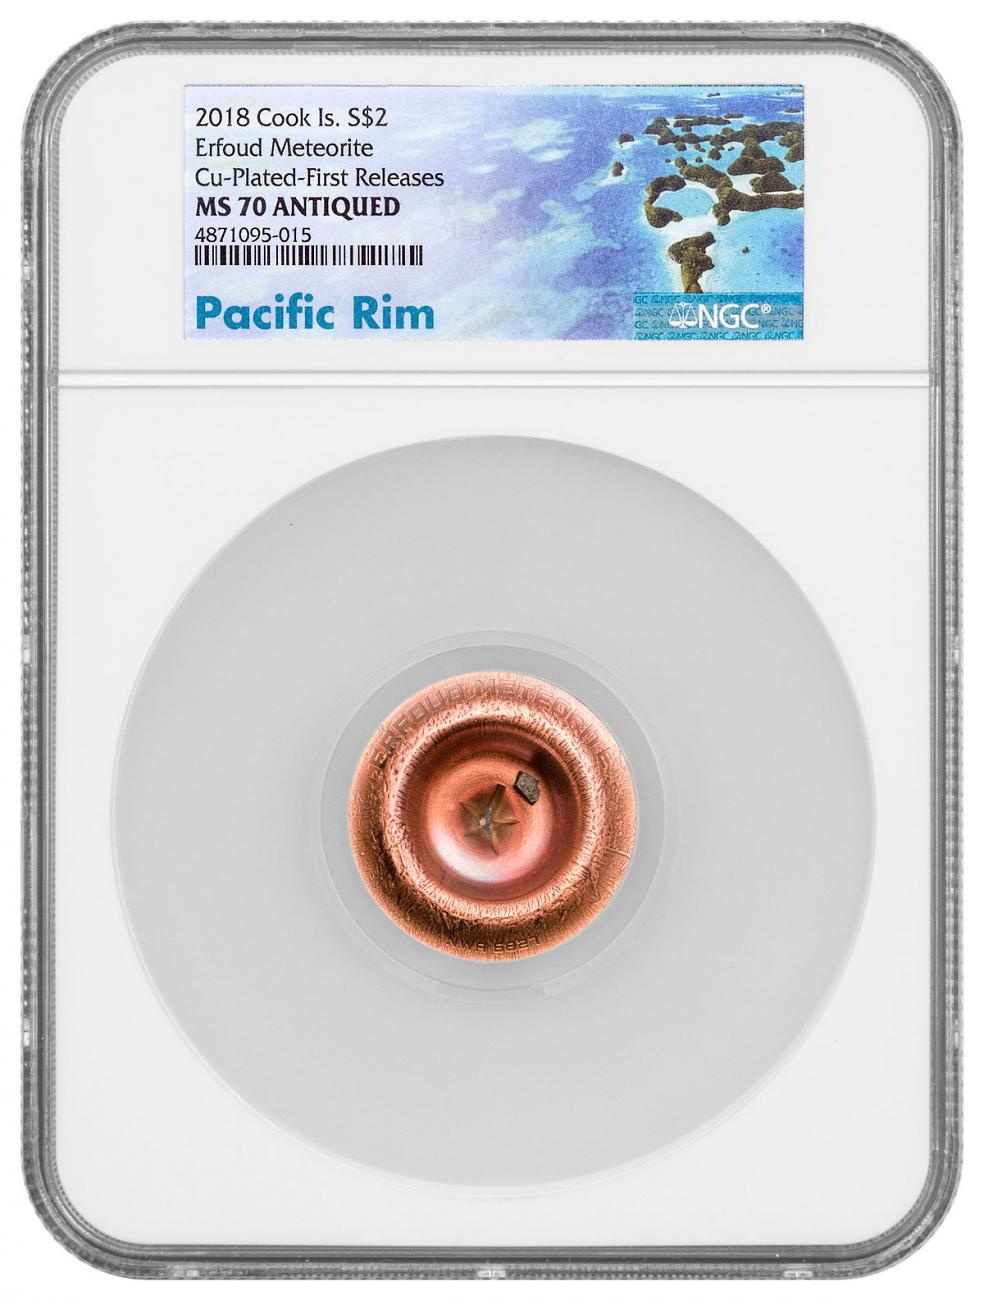 2018 Cook Islands Meteorite Impacts - Erfoud Meteorite 1/2 oz Silver $2 Coin NGC MS70 FR Exclusive Pacific Rim Label